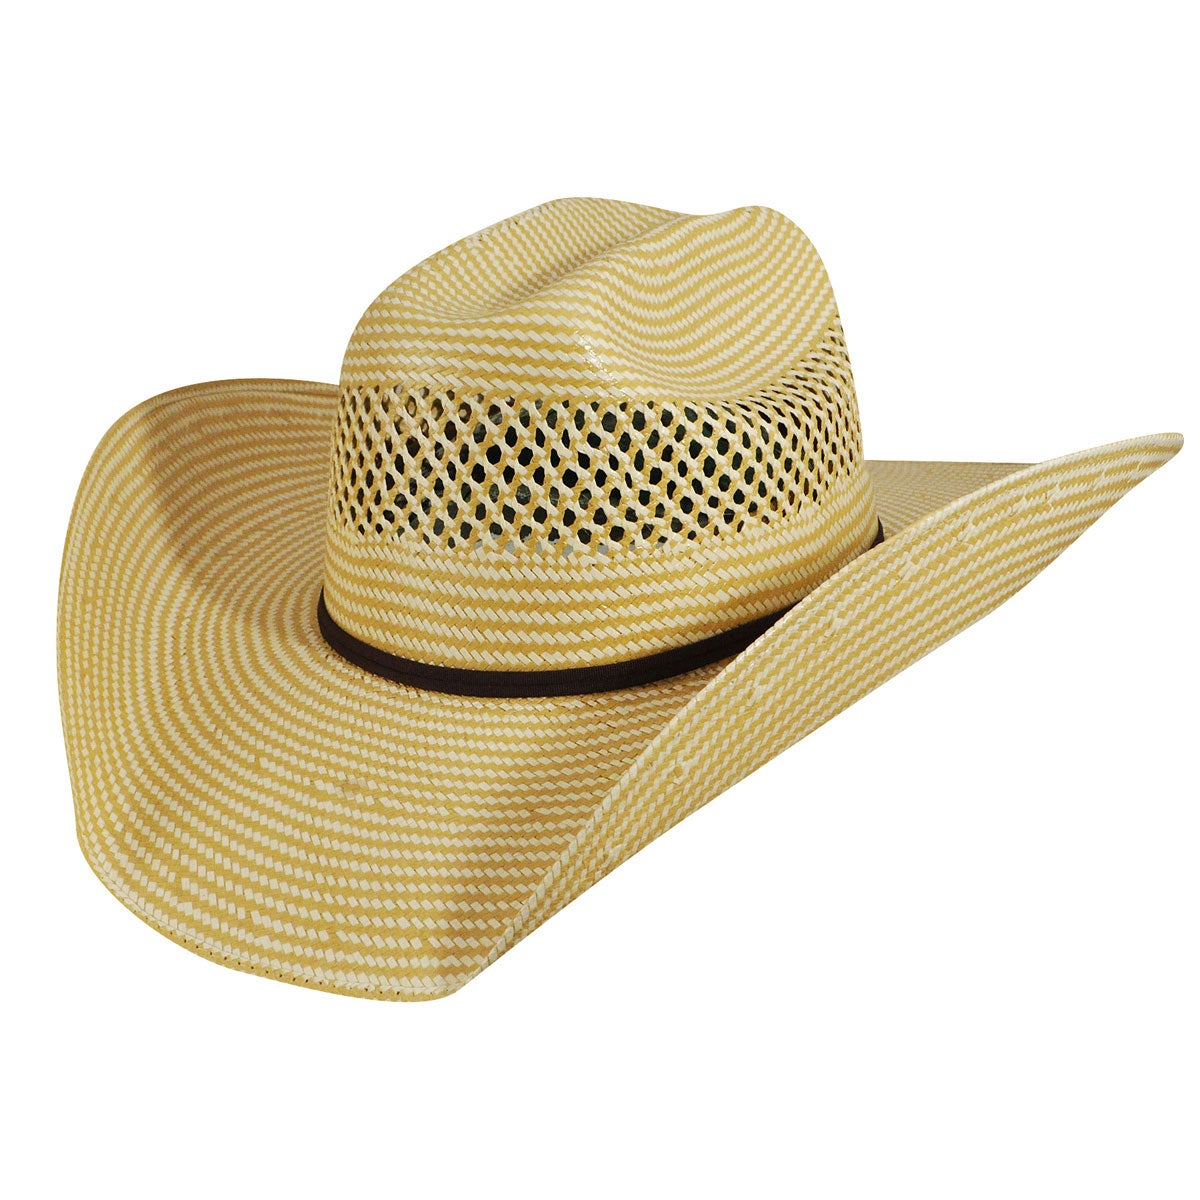 Bailey Western Cassius 7X Western Hat in Natural,Tan